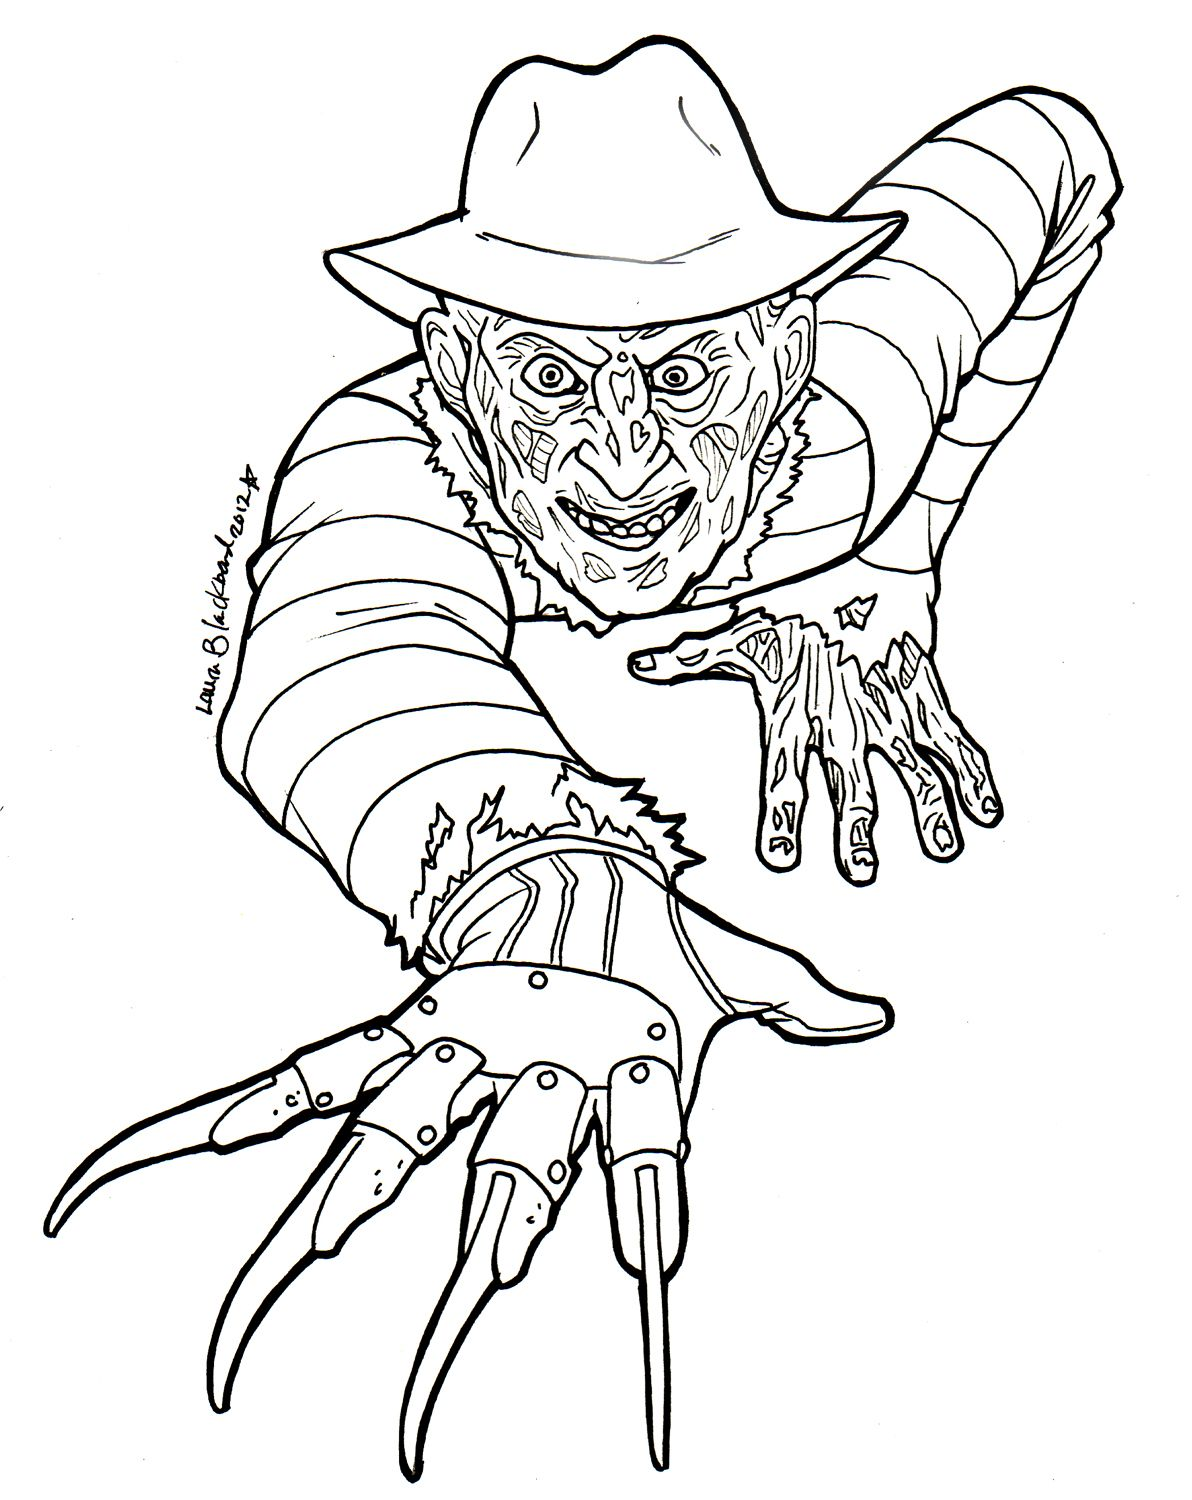 freddy krueger coloring pages colouring freddy krueger   Google zoeken | Drawings | Coloring  freddy krueger coloring pages